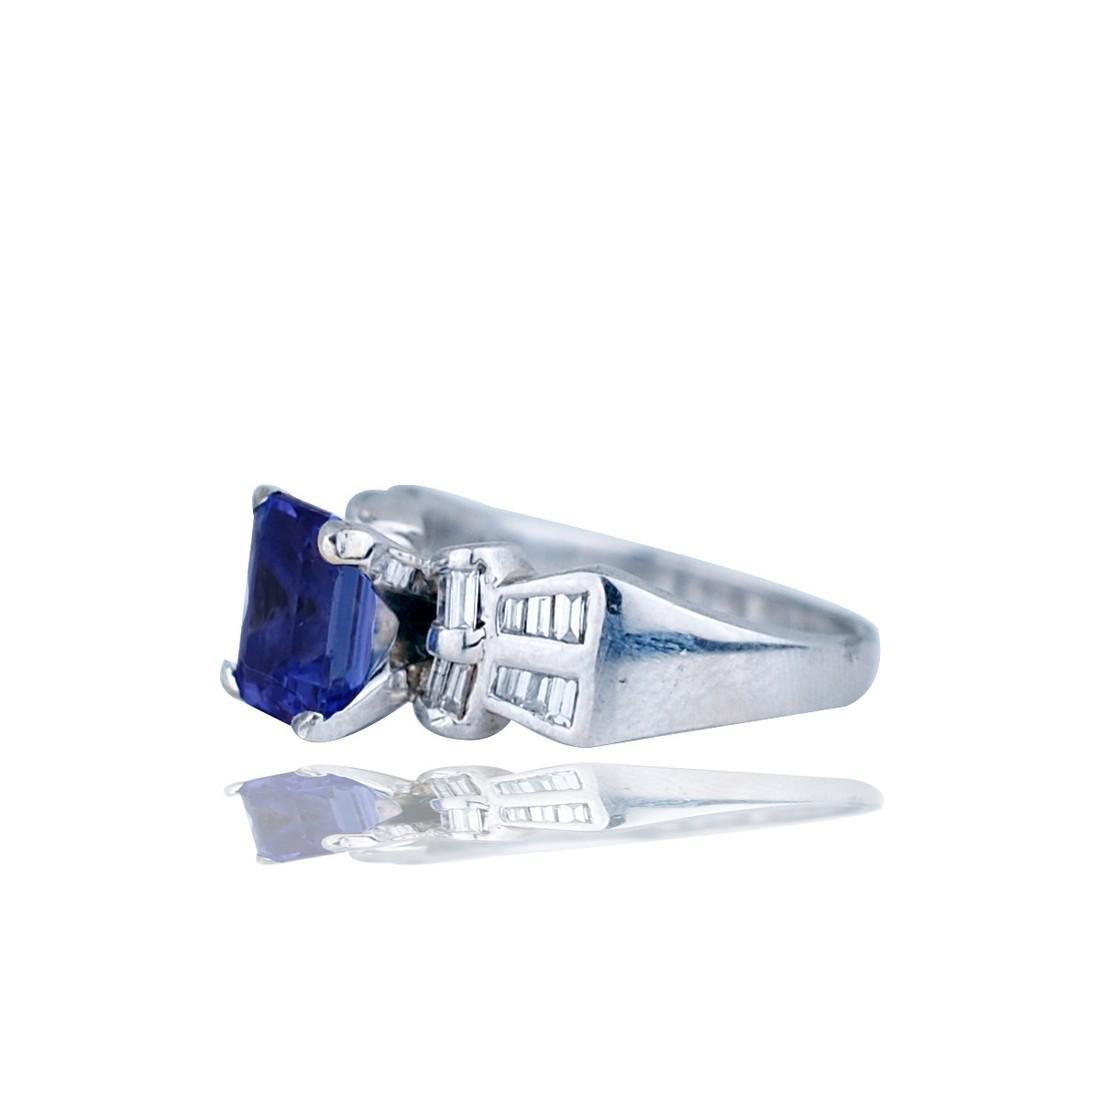 Platinum Ring, Bow-Tie Styled With Baguette Diamond & - 2